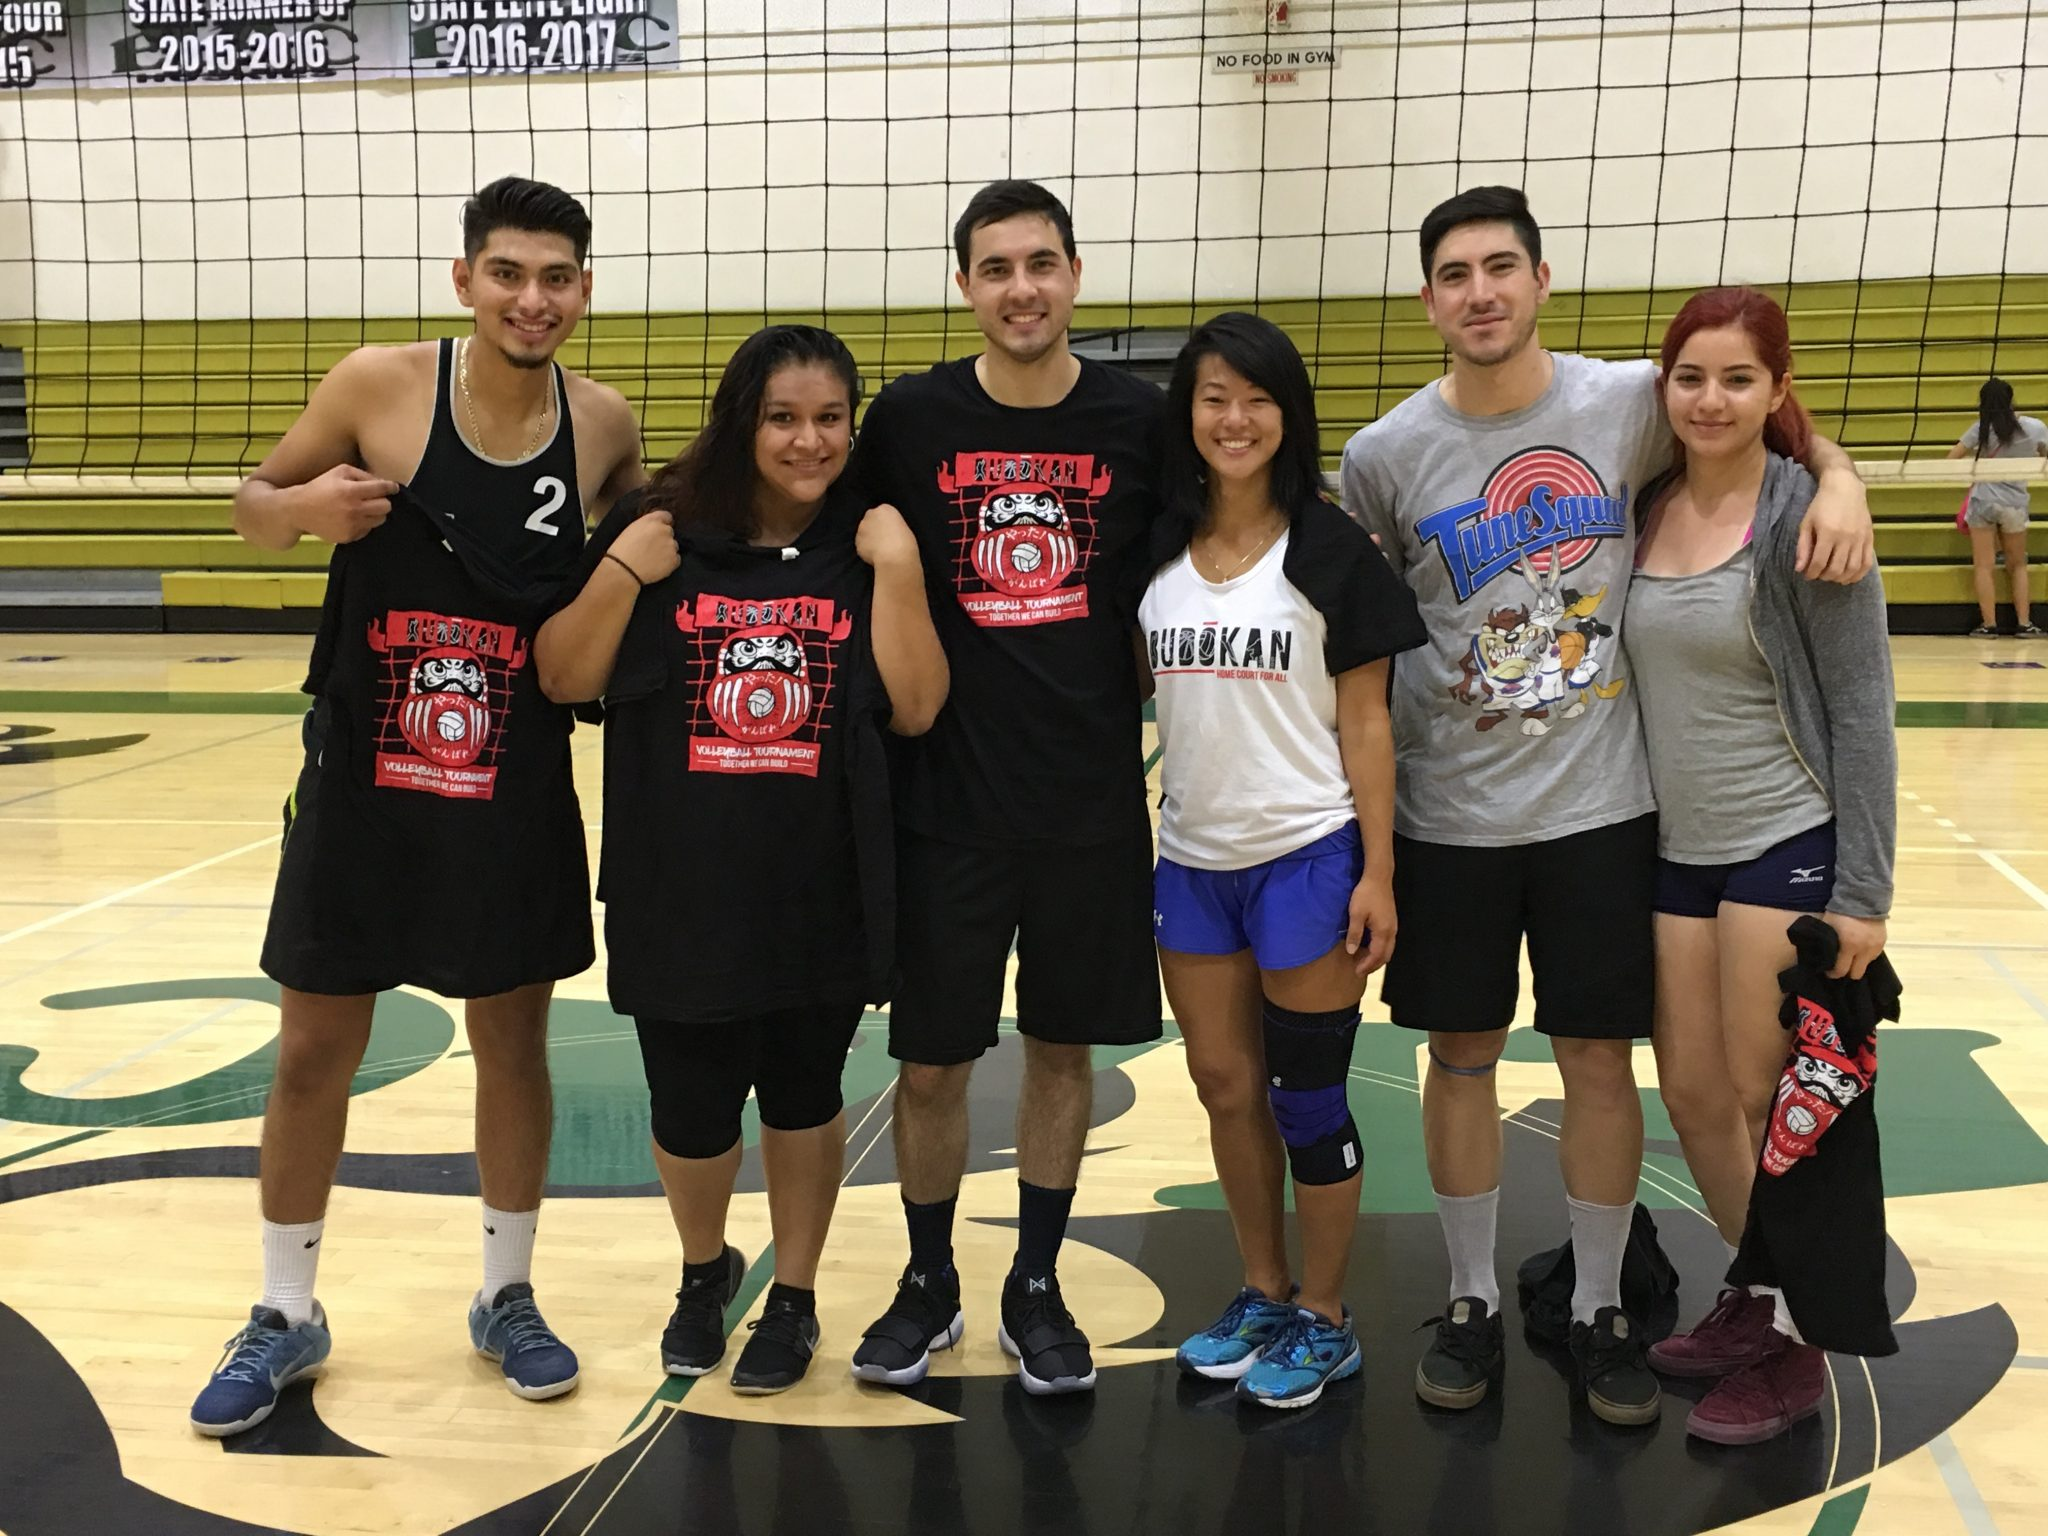 Coed & Reverse Coed Quads Volleyball Tournament